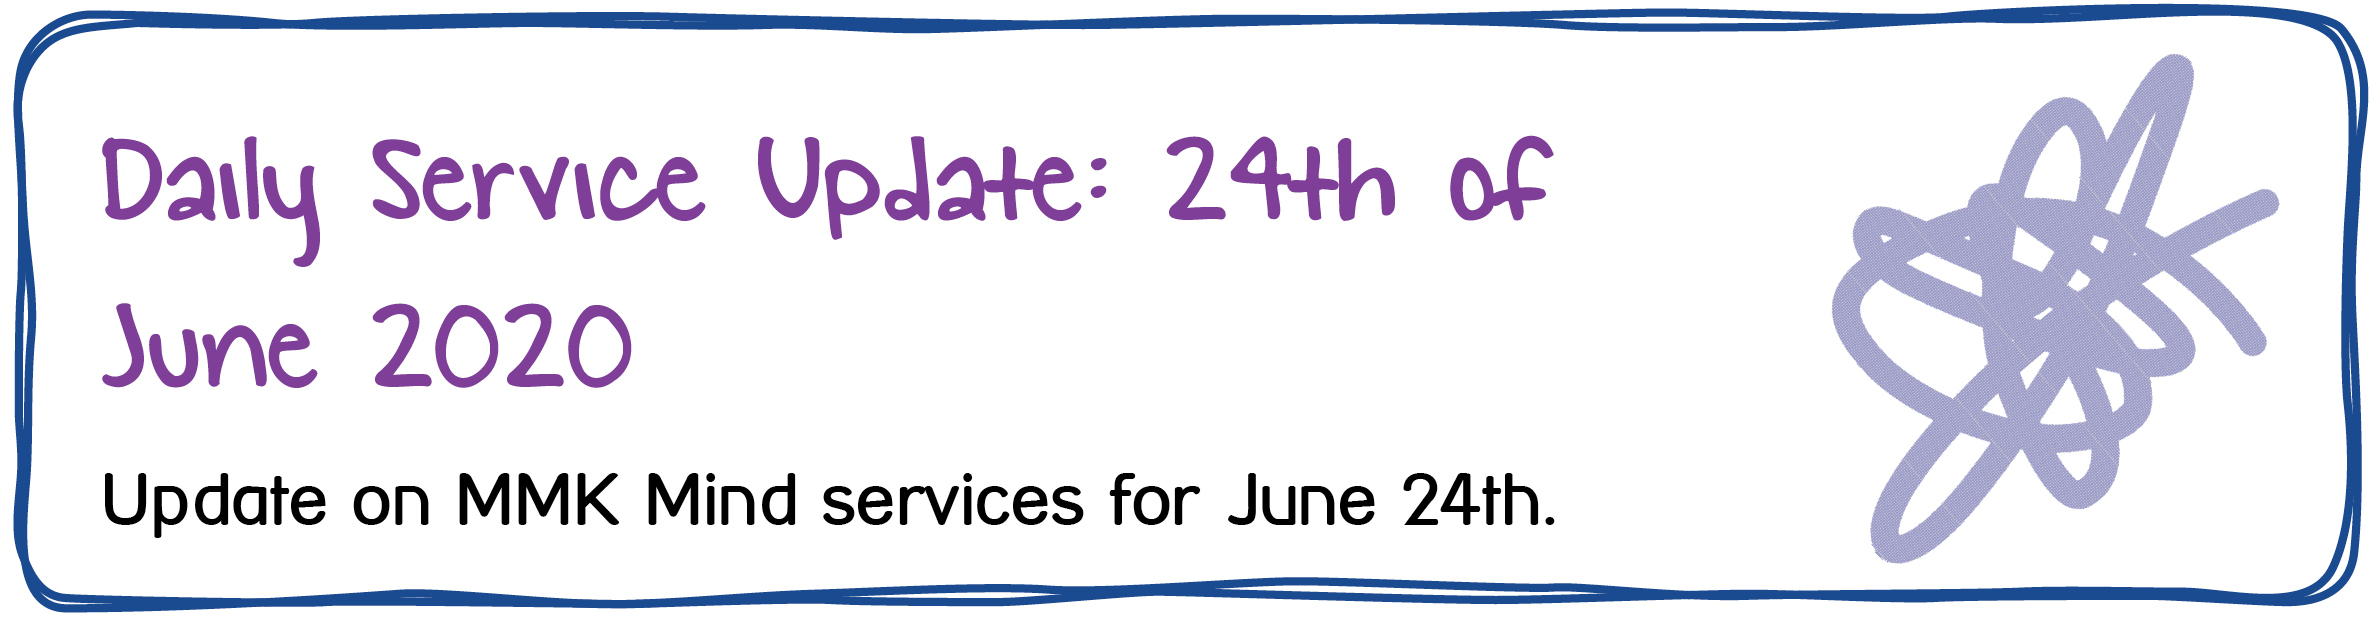 Daily Service Update: 24th of June 2020. Update on MMK Mind services for June 24th.